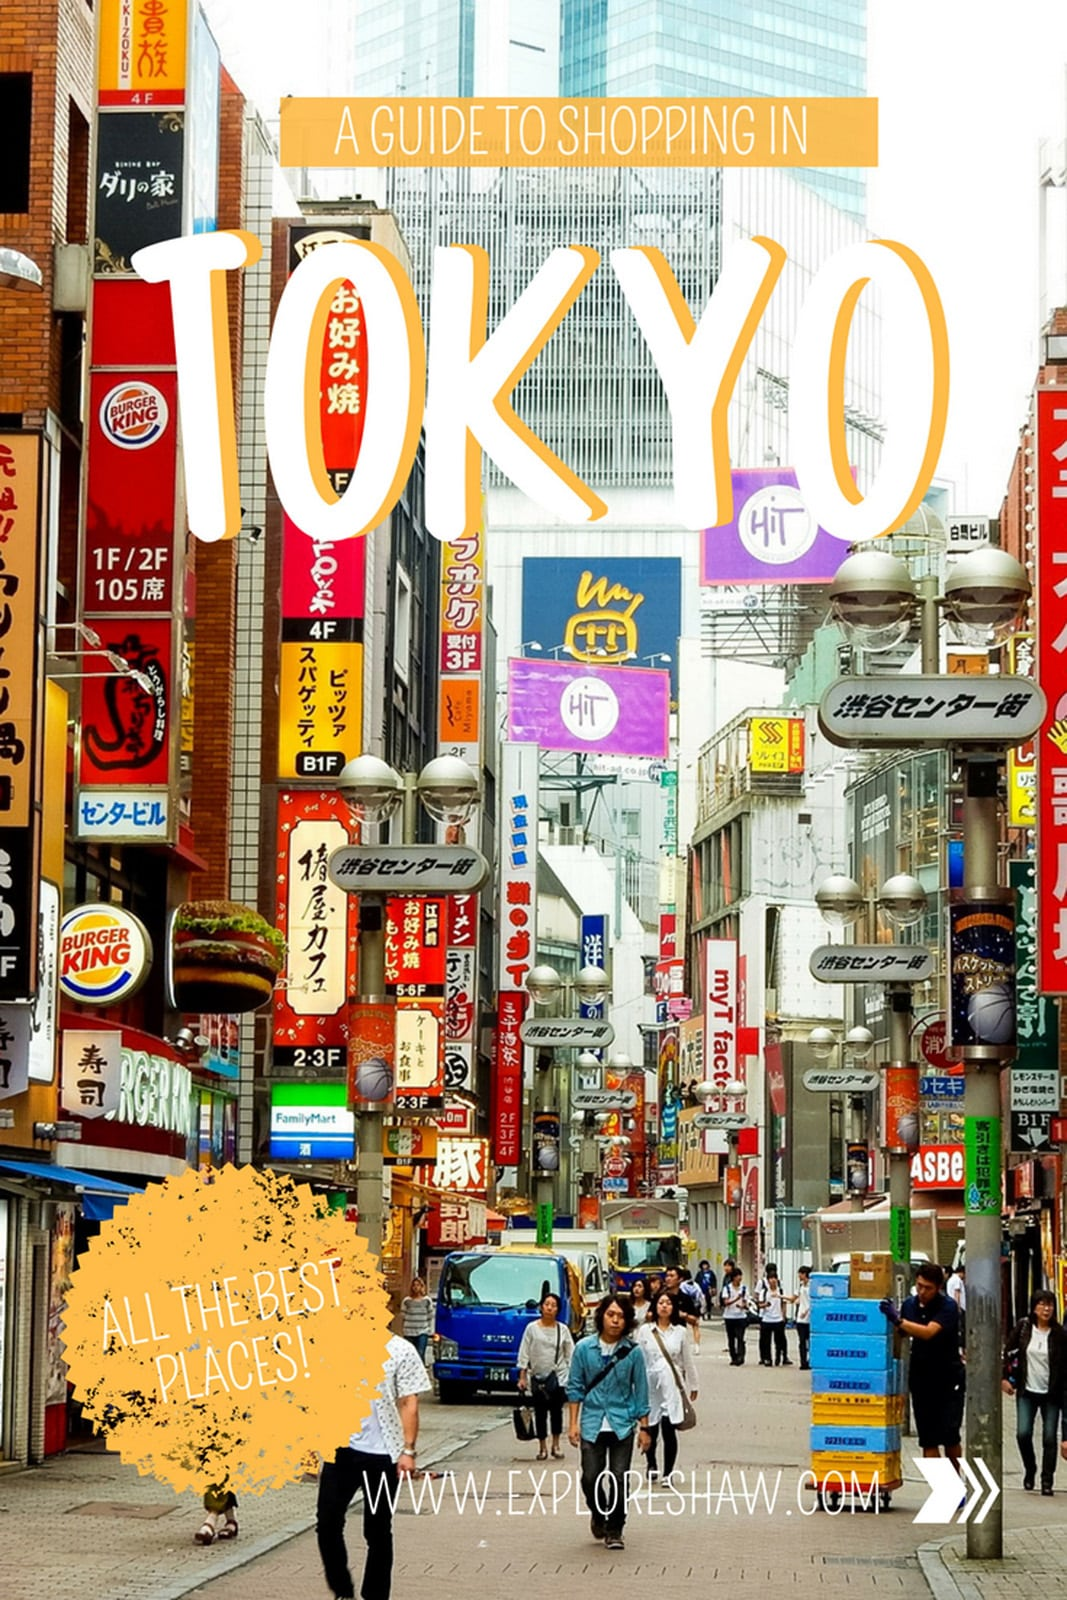 A guide to shopping in all the different districts of Tokyo - where you can find the best markets, high end stores and souvenirs! #Japan #Tokyo